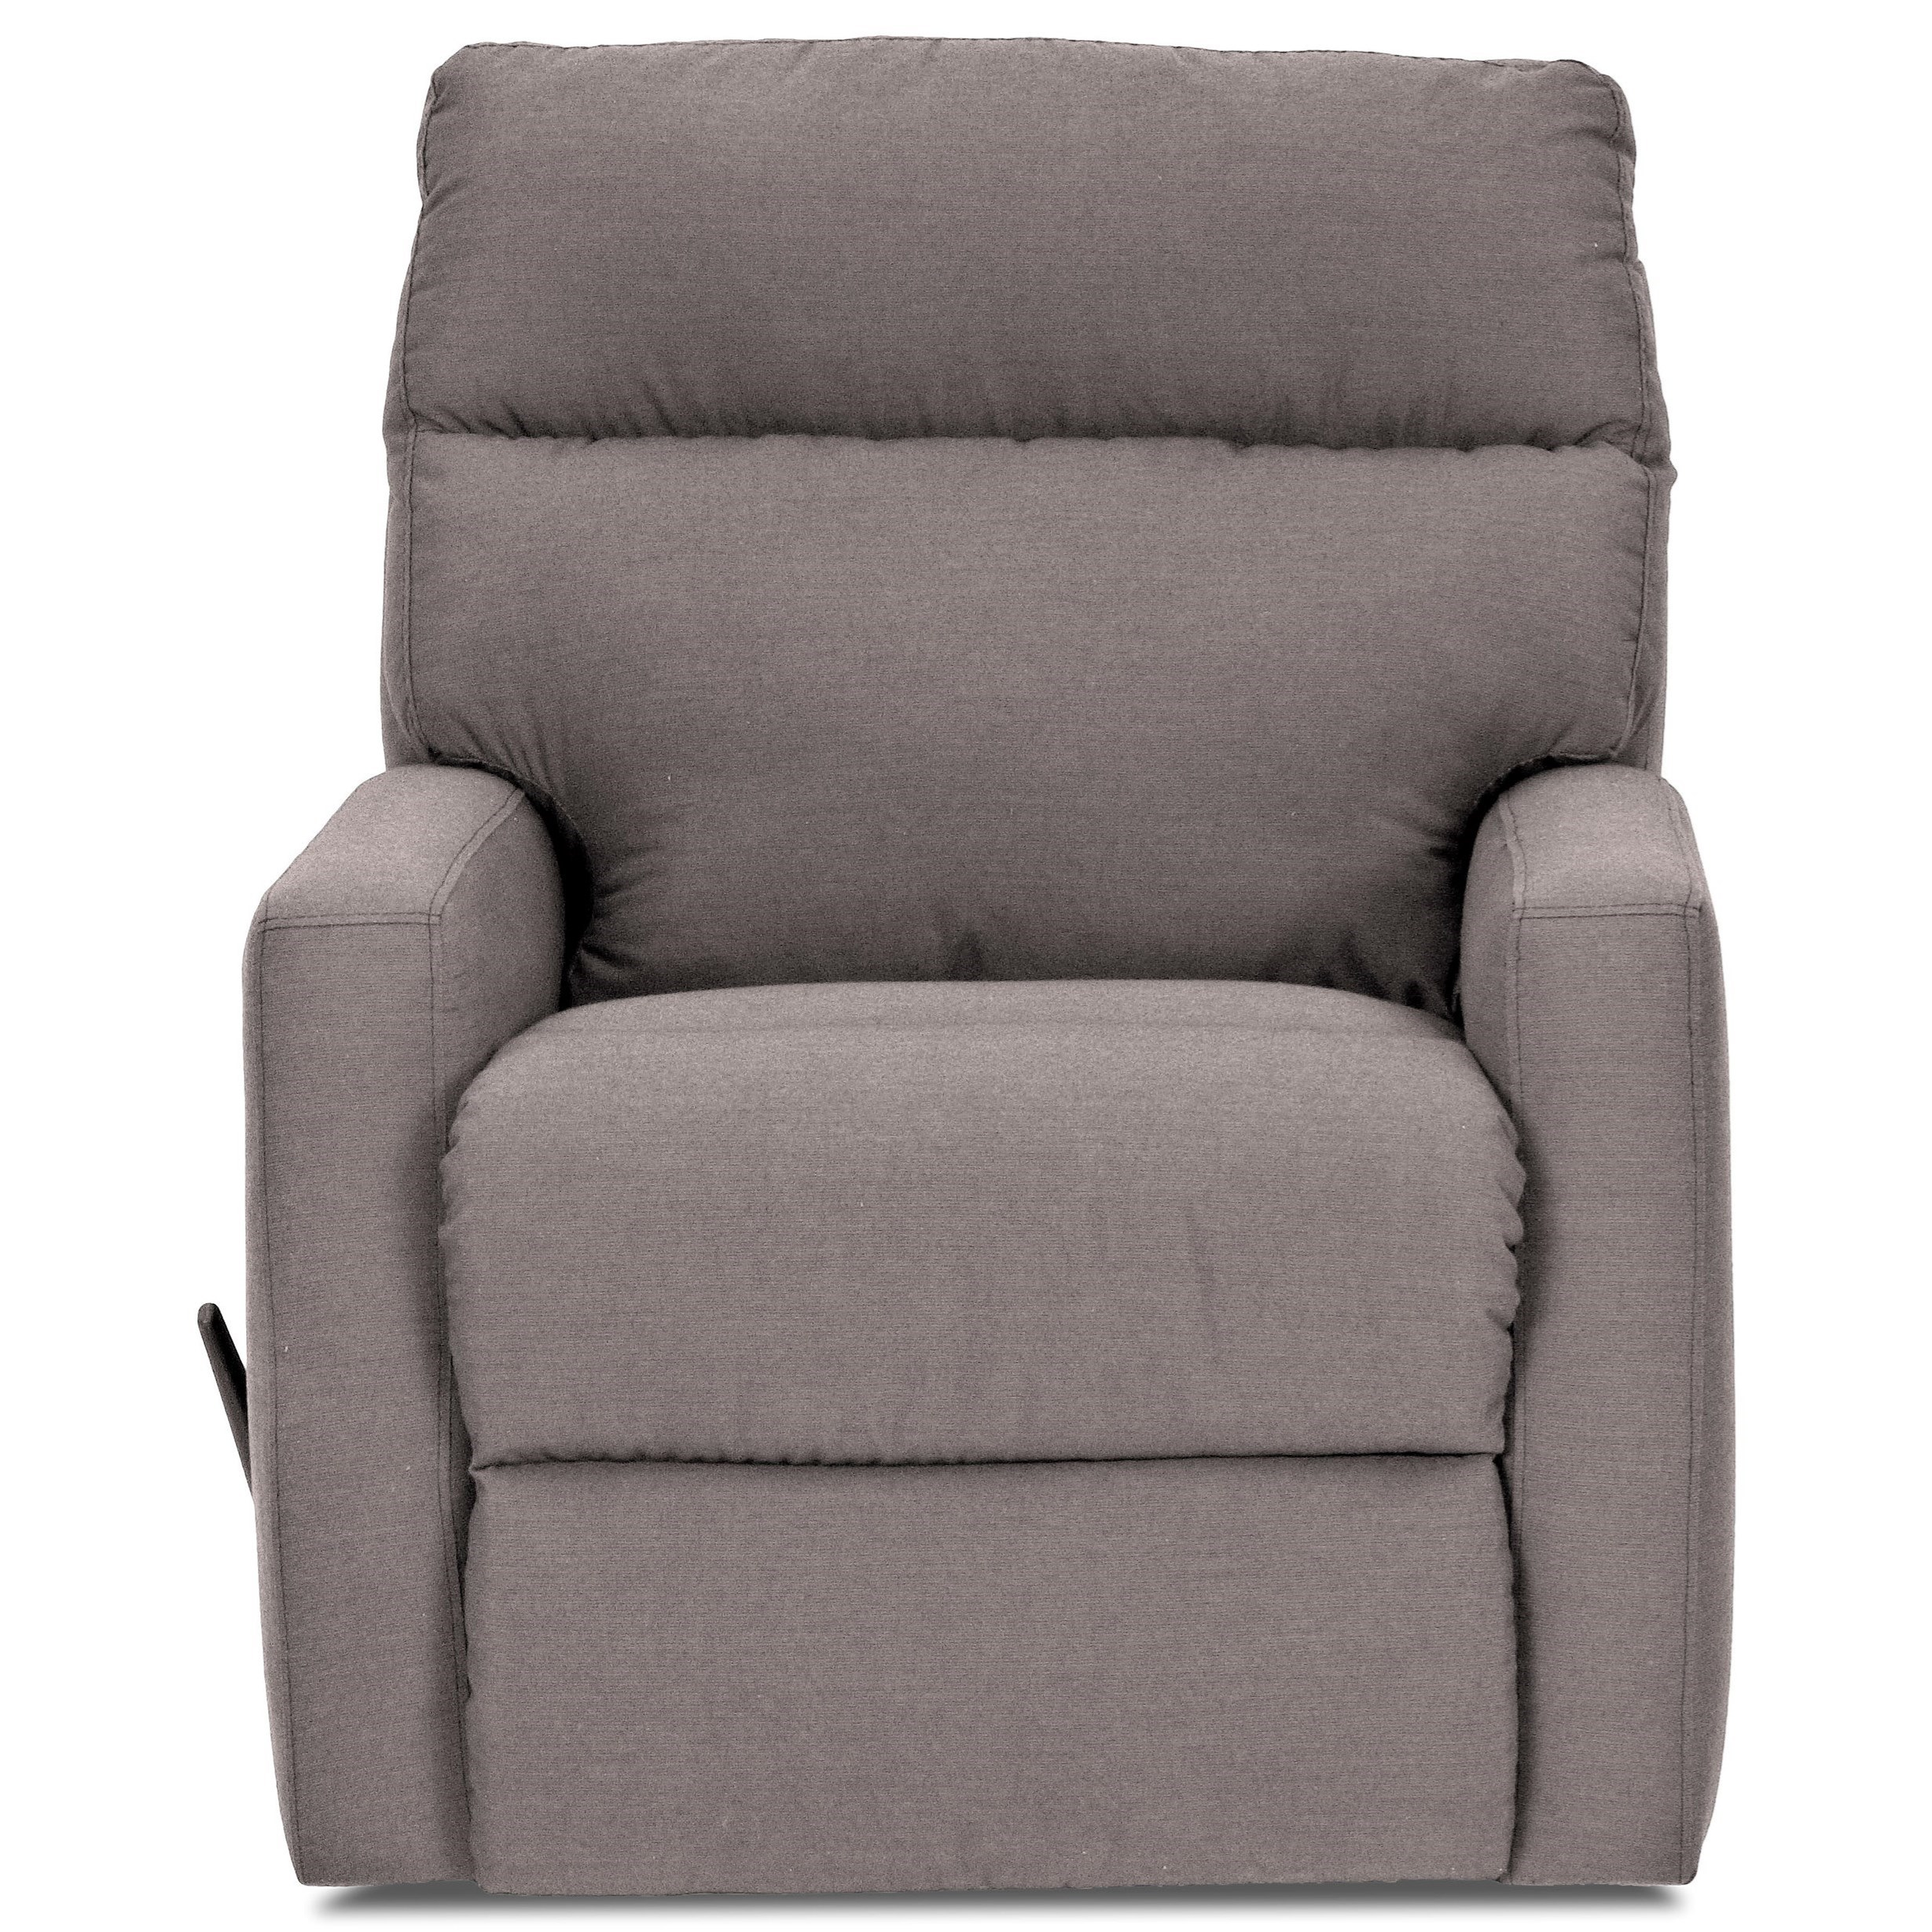 Reclining Rocking Chair with Soft Track Arms